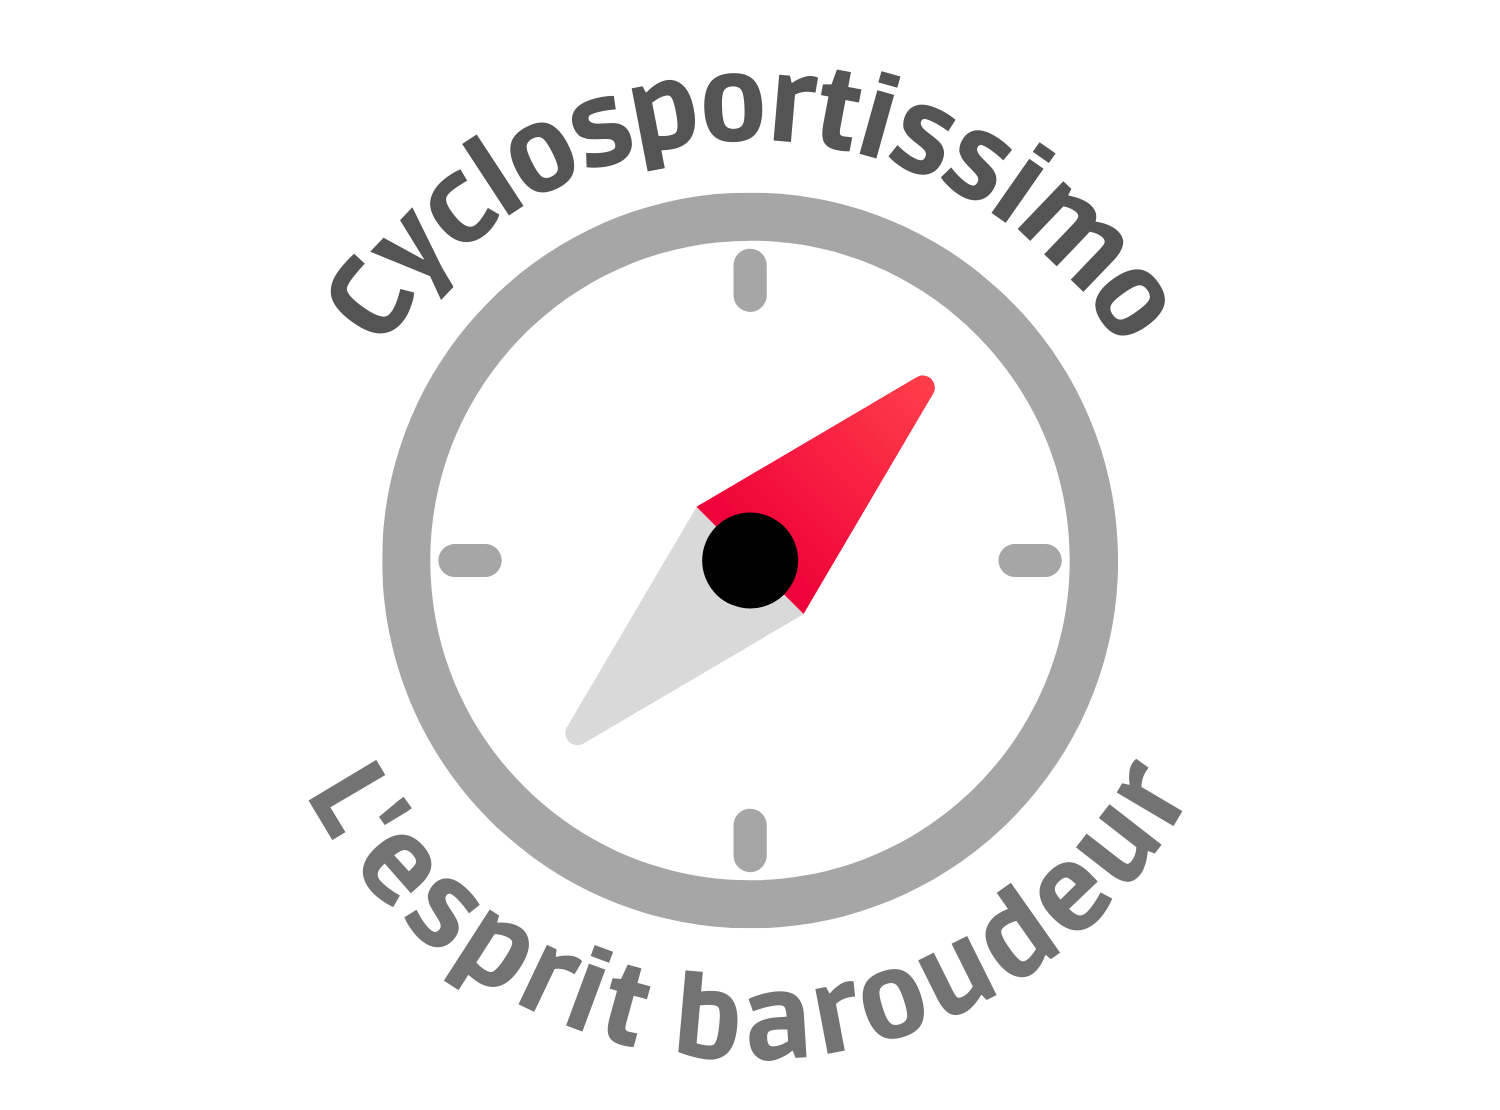 www.cyclosportissimo.com